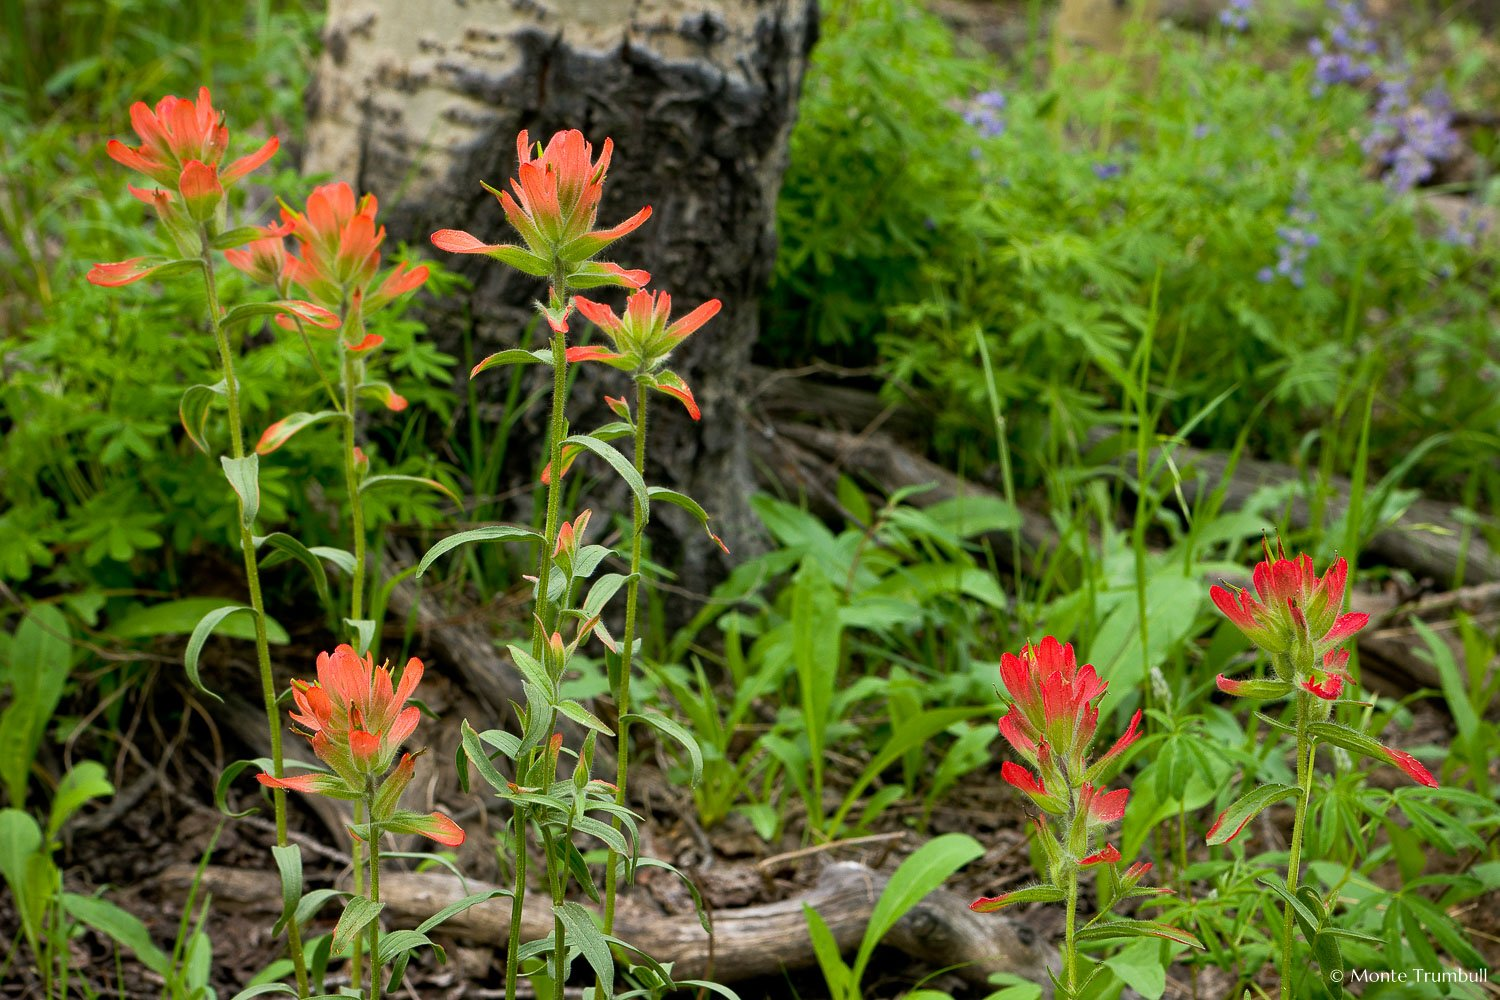 MT-20080716-163409-0175-Edit-Colorado-aspen-trunks-flowers-red-paintbrush.jpg